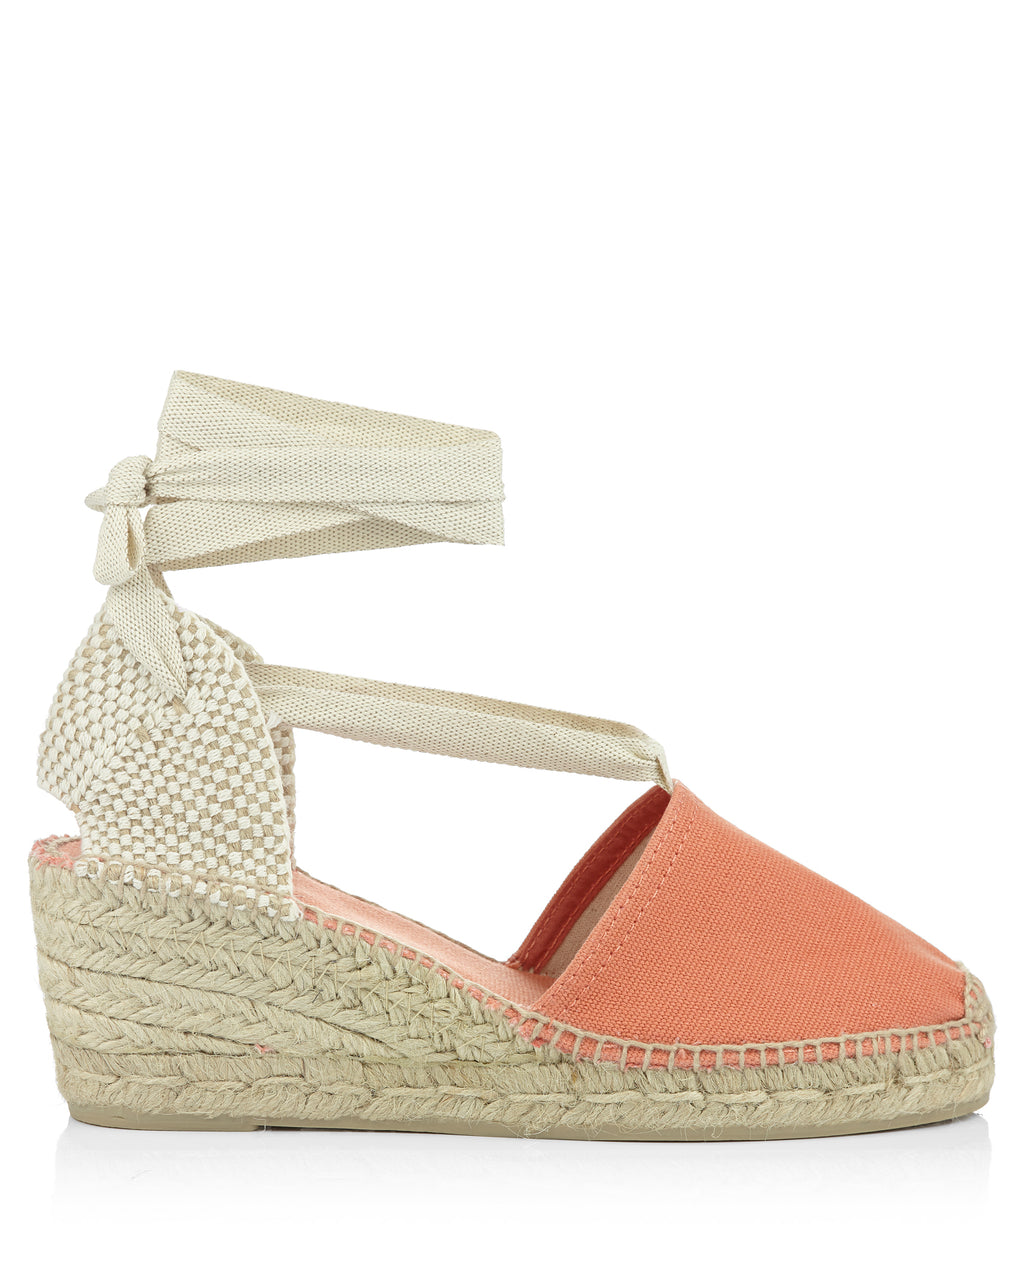 Valencia Salmon Pink Fabric Tie Up Espadrilles